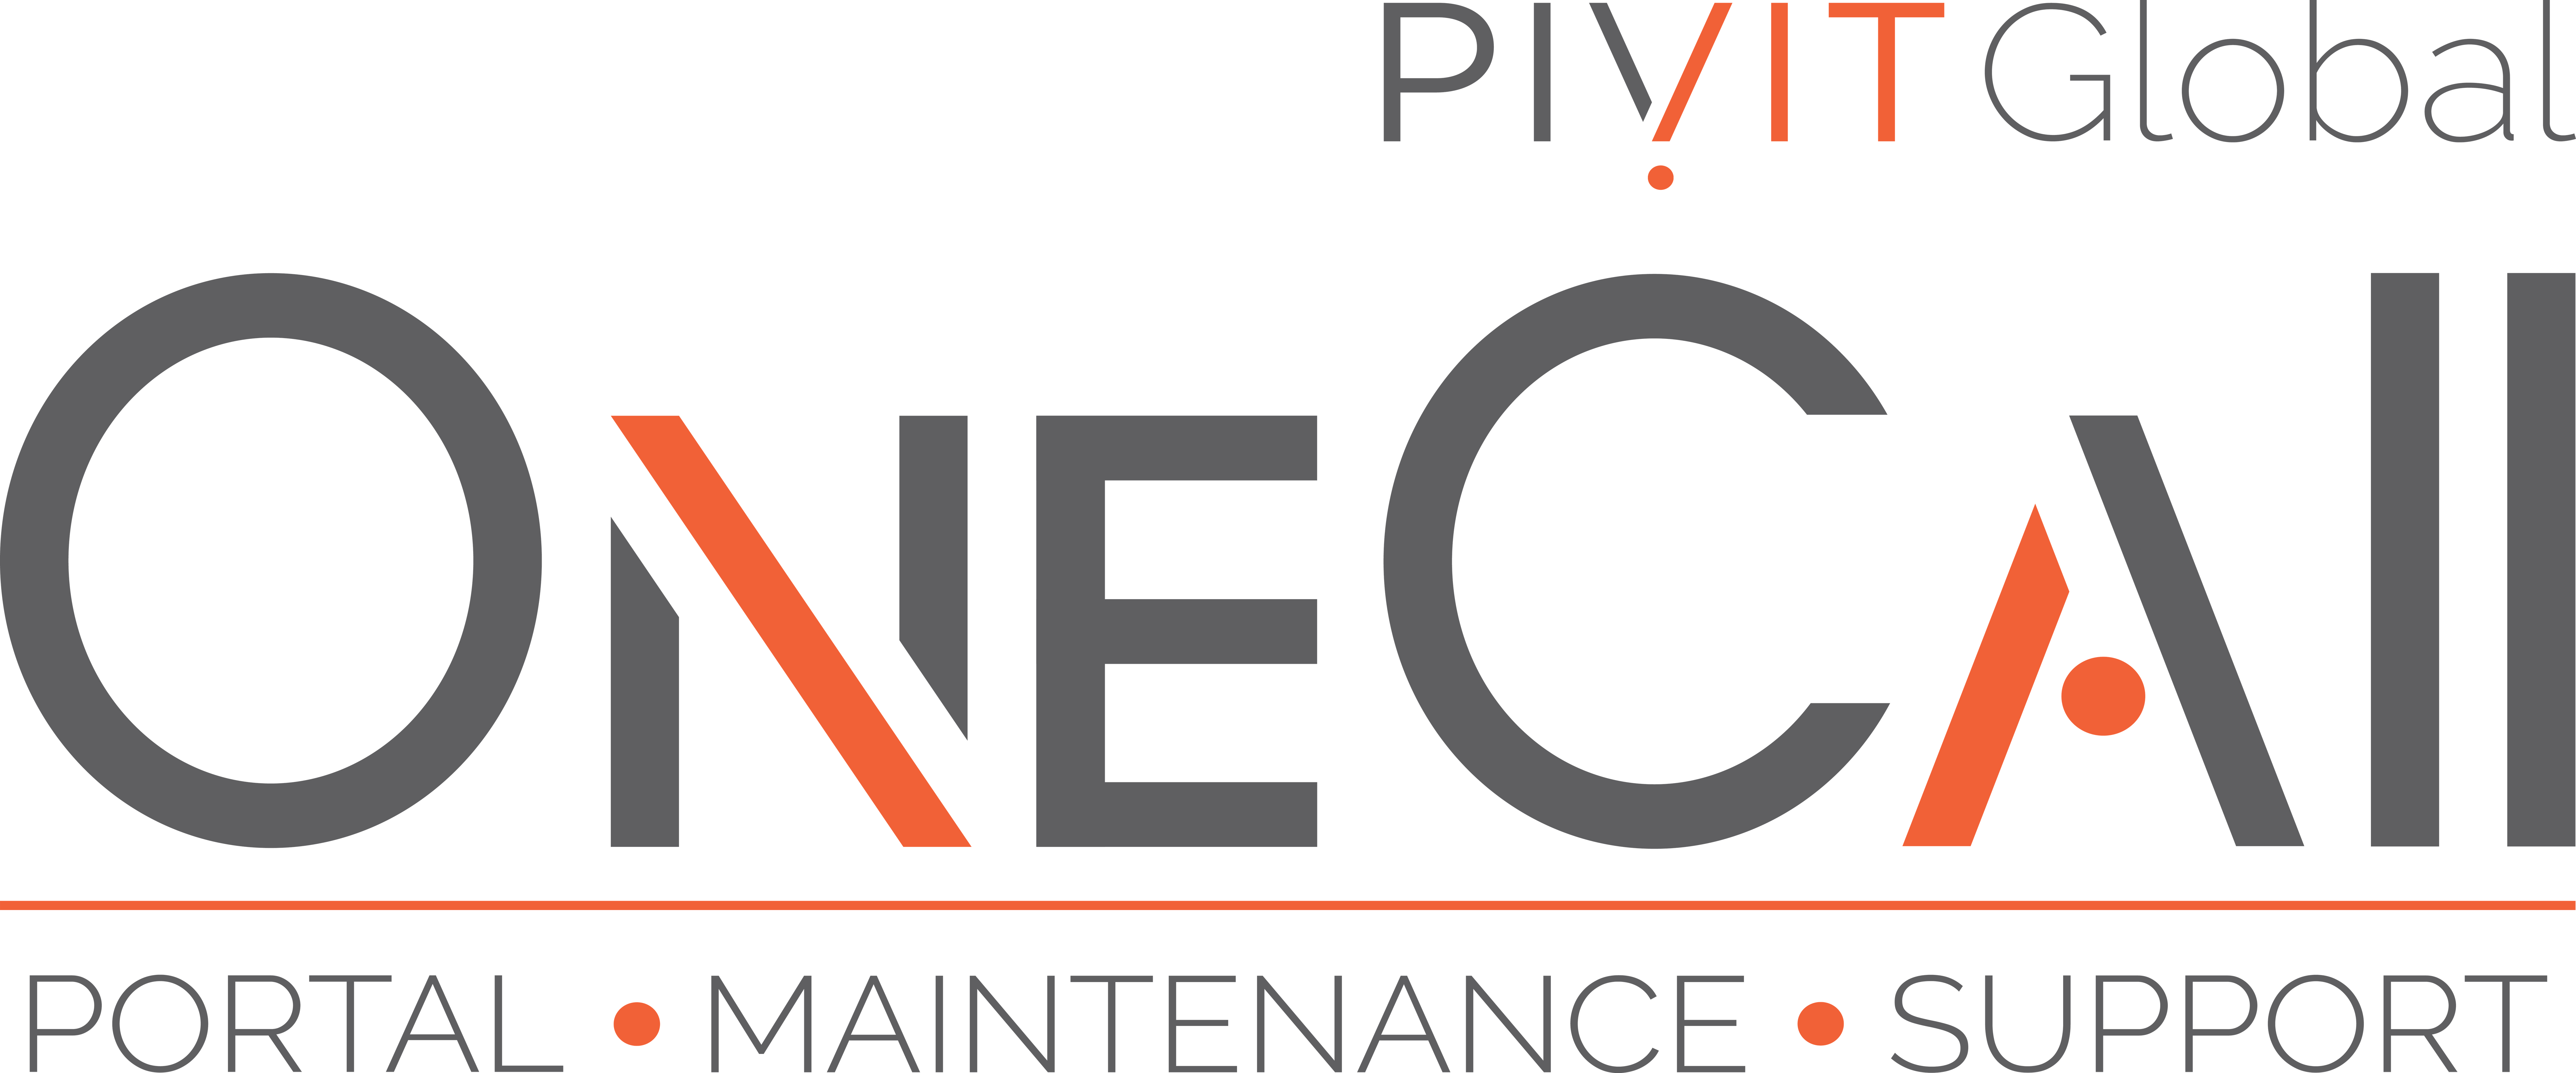 One Call - Support Maintenance and Portal - From PivIT Global